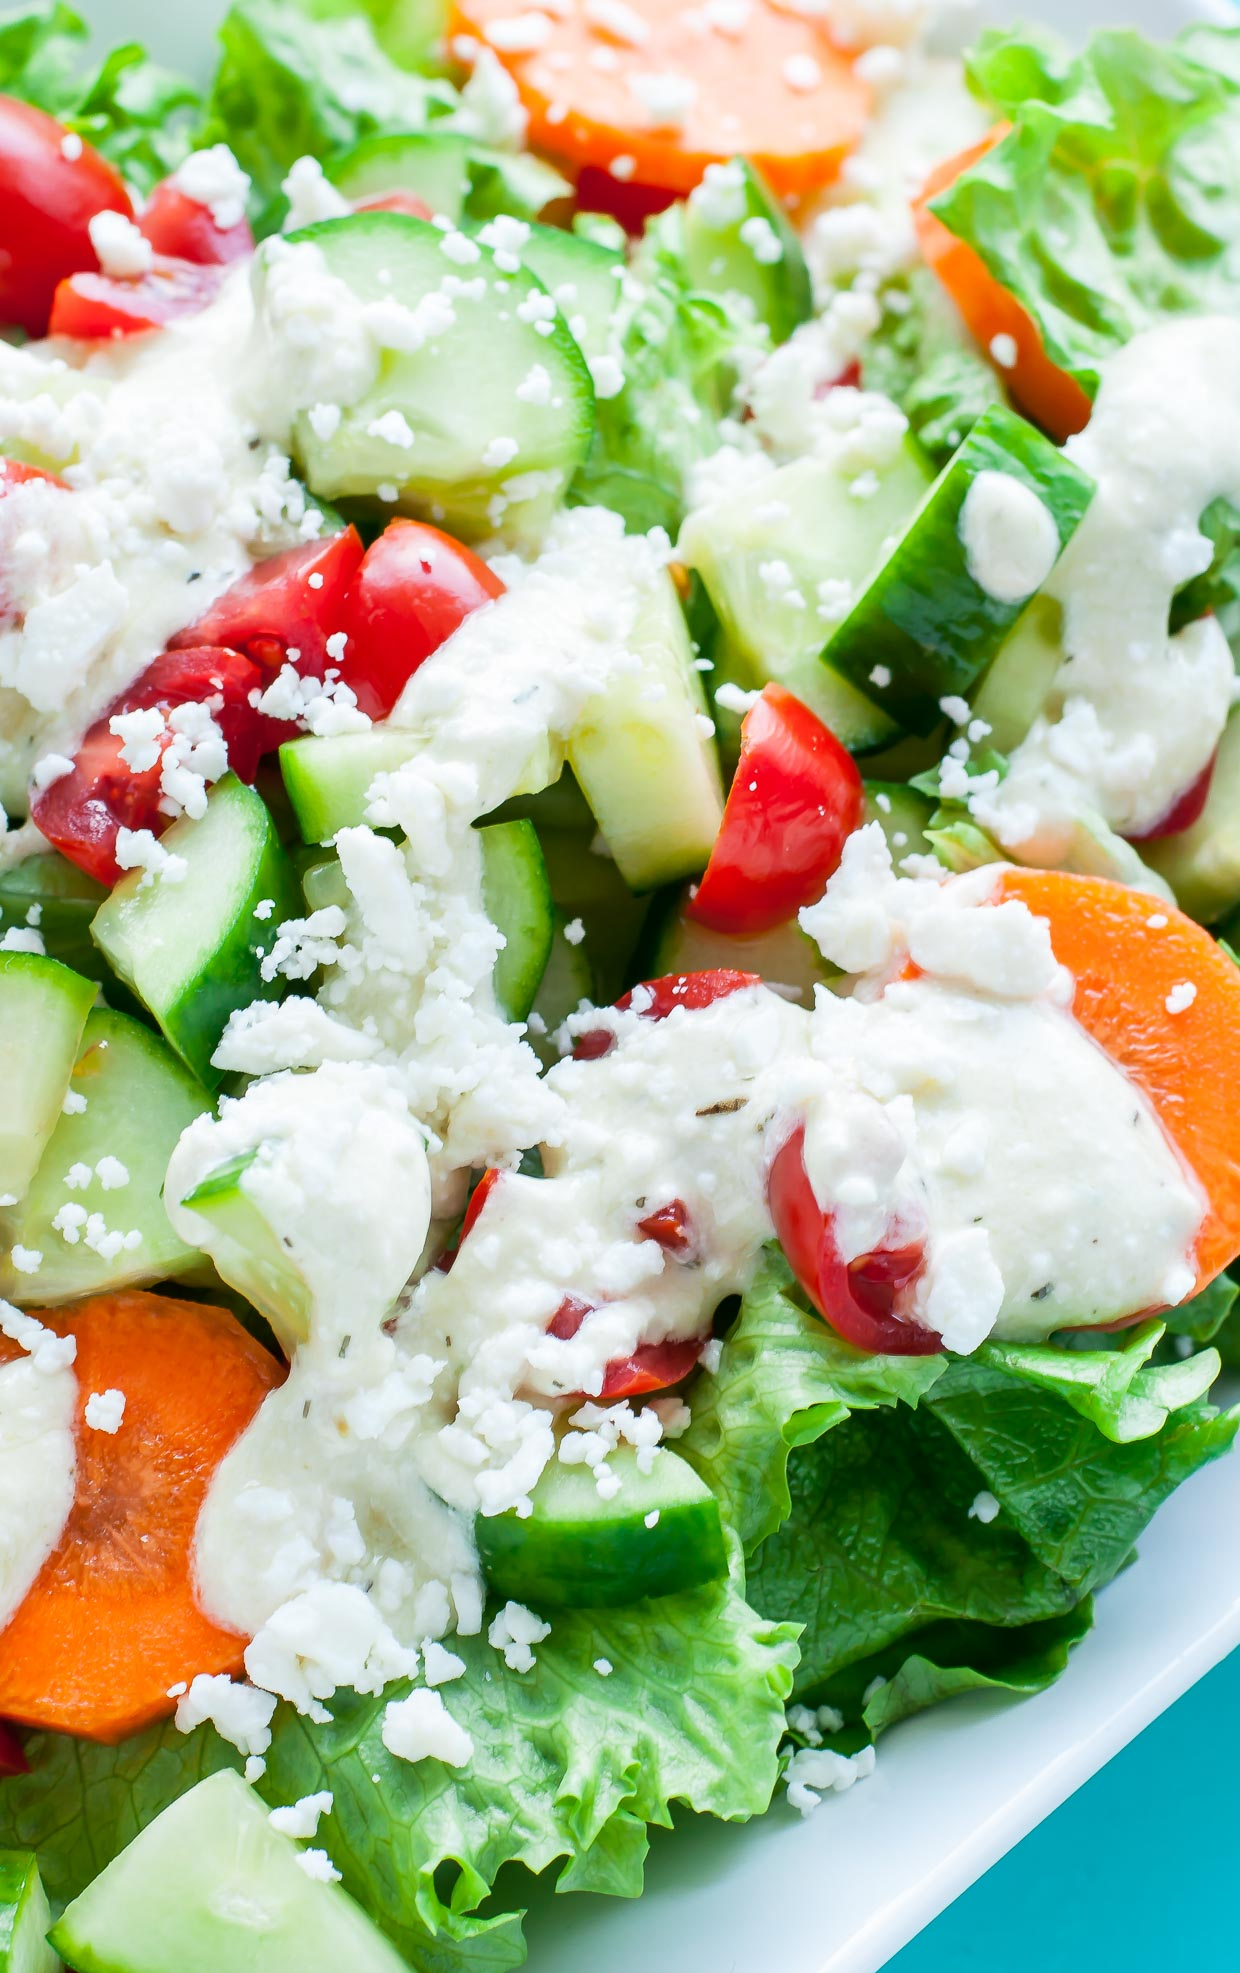 This Creamy Feta Dressing is ready to rock your veggies! Uber easy and ready in just 6 minutes, you'll want to pour this dressing on everything from salads to sandwiches.